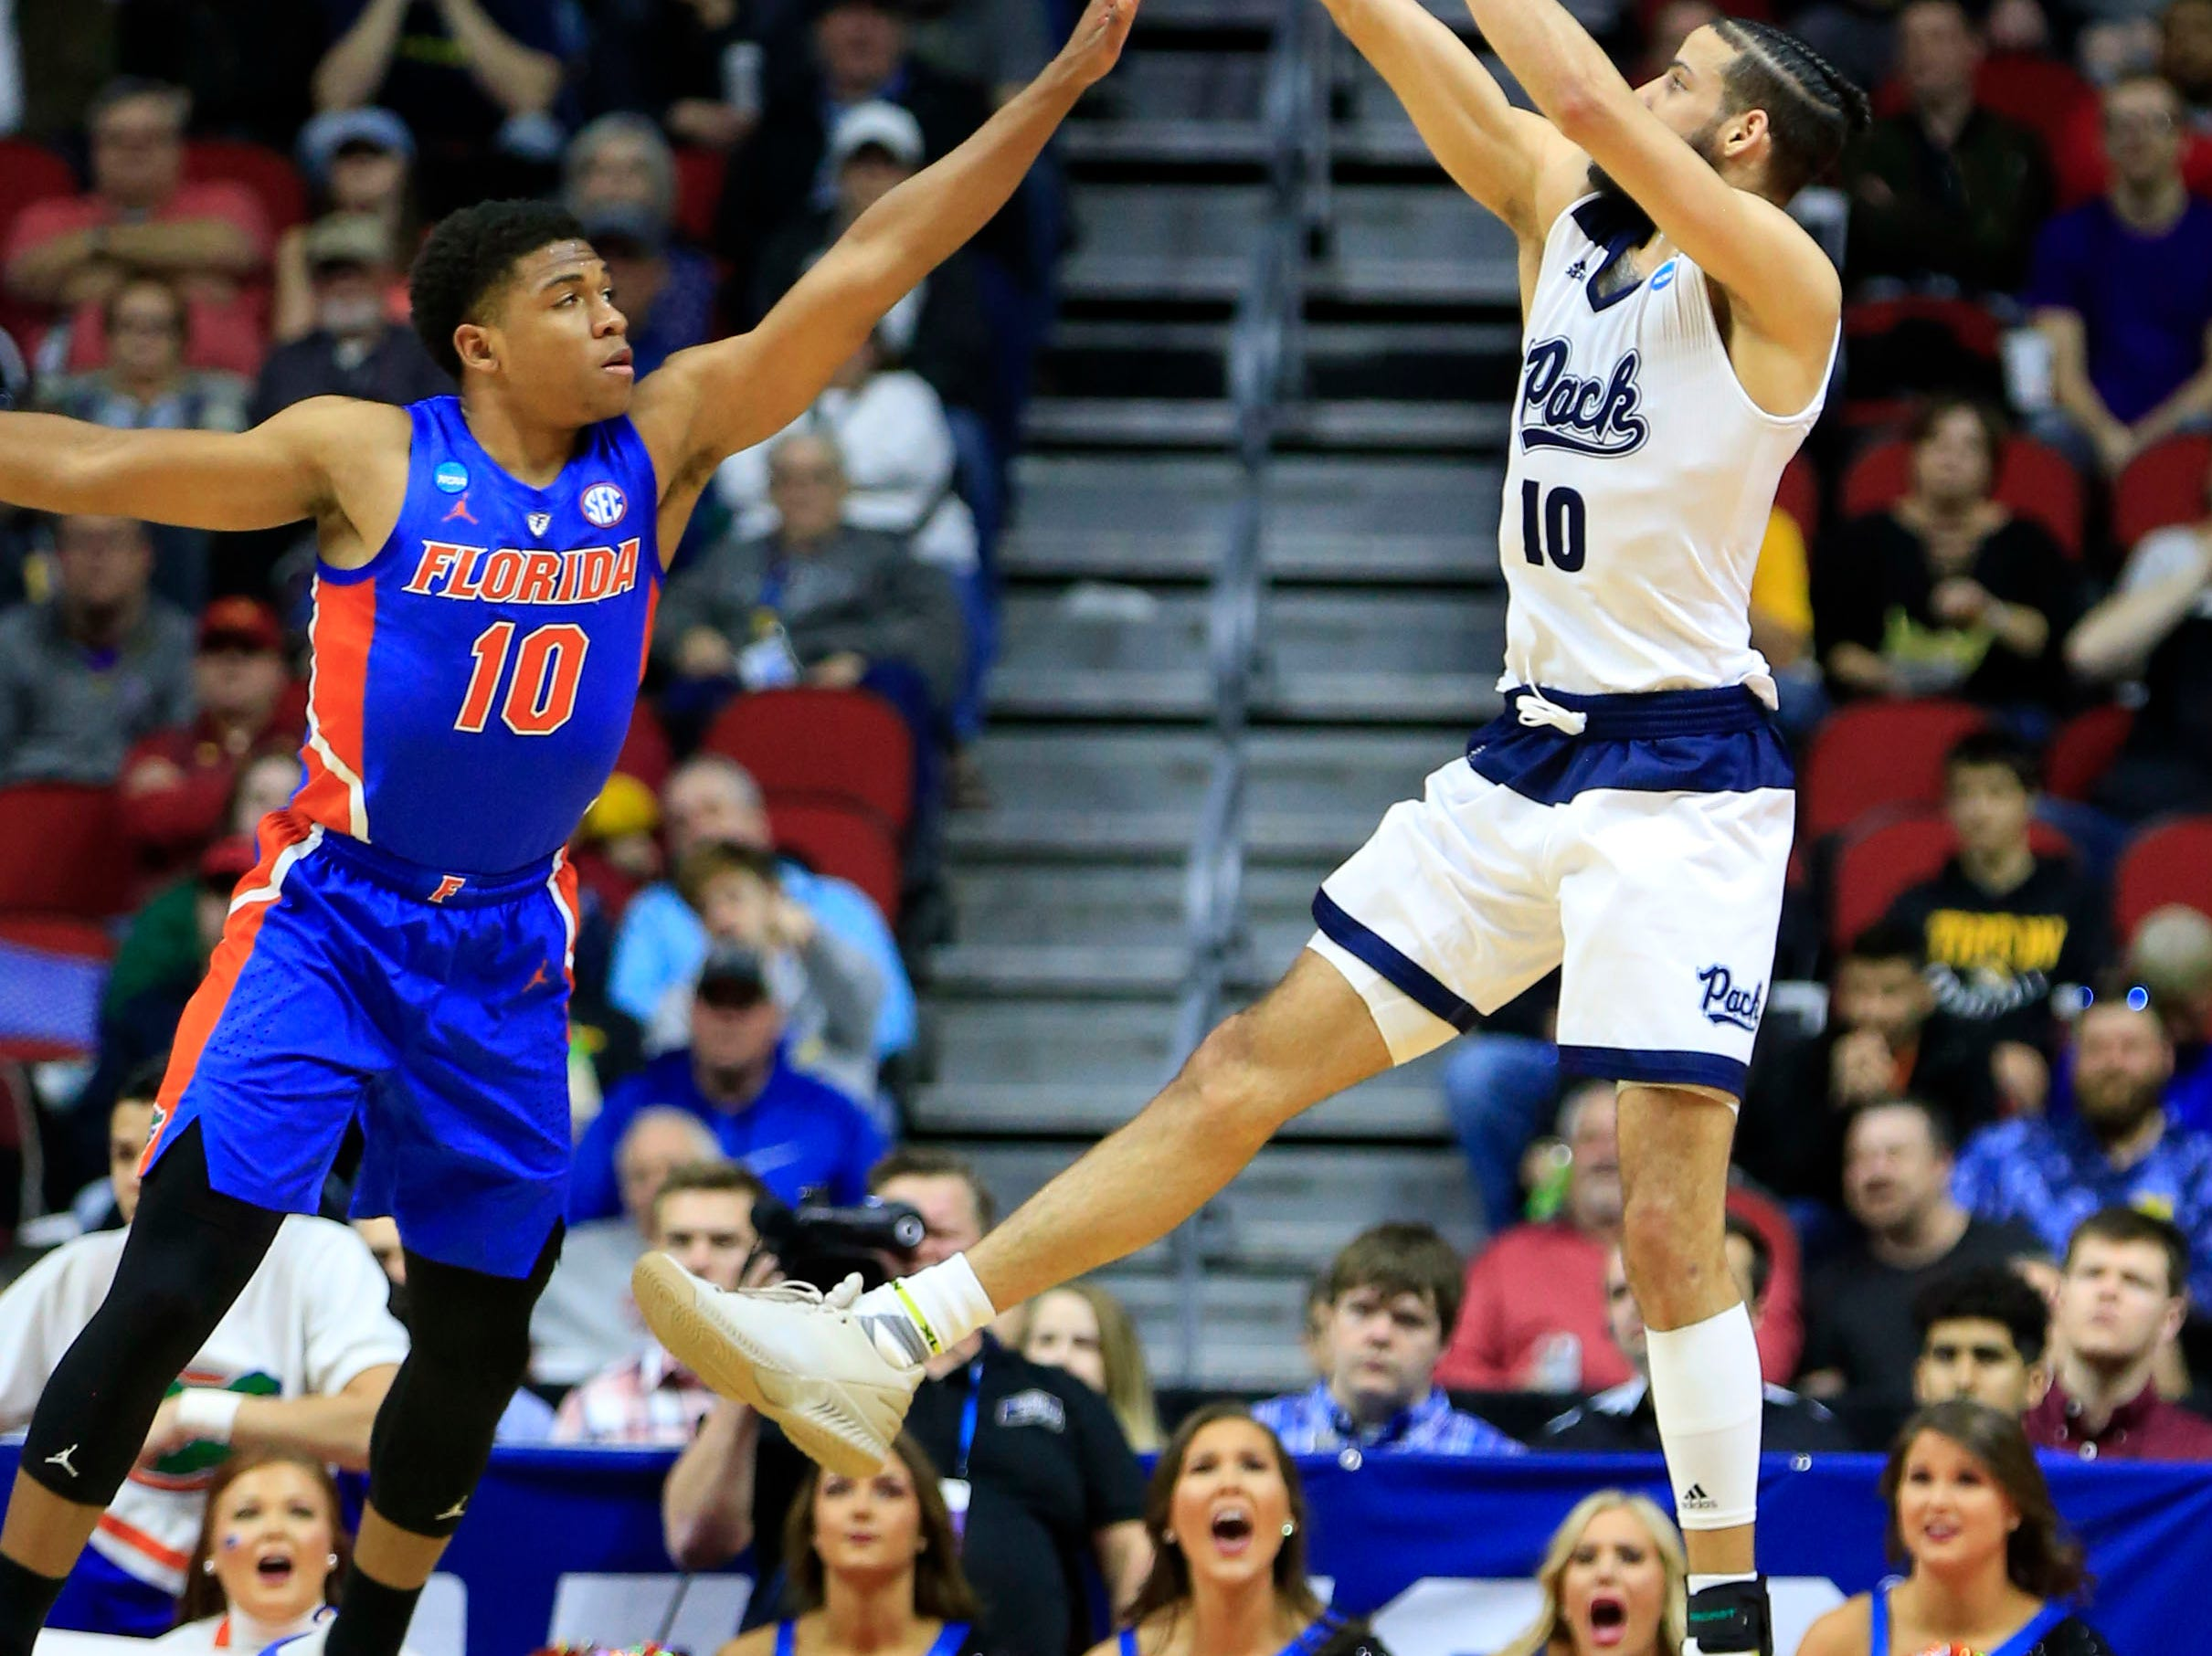 Nevada forward Caleb Martin puts up a shot as Florida guard Noah Locke defends during their NCAA Division I Men's Basketball Championship First Round game on Thursday, March 21, 2019 in Des Moines.